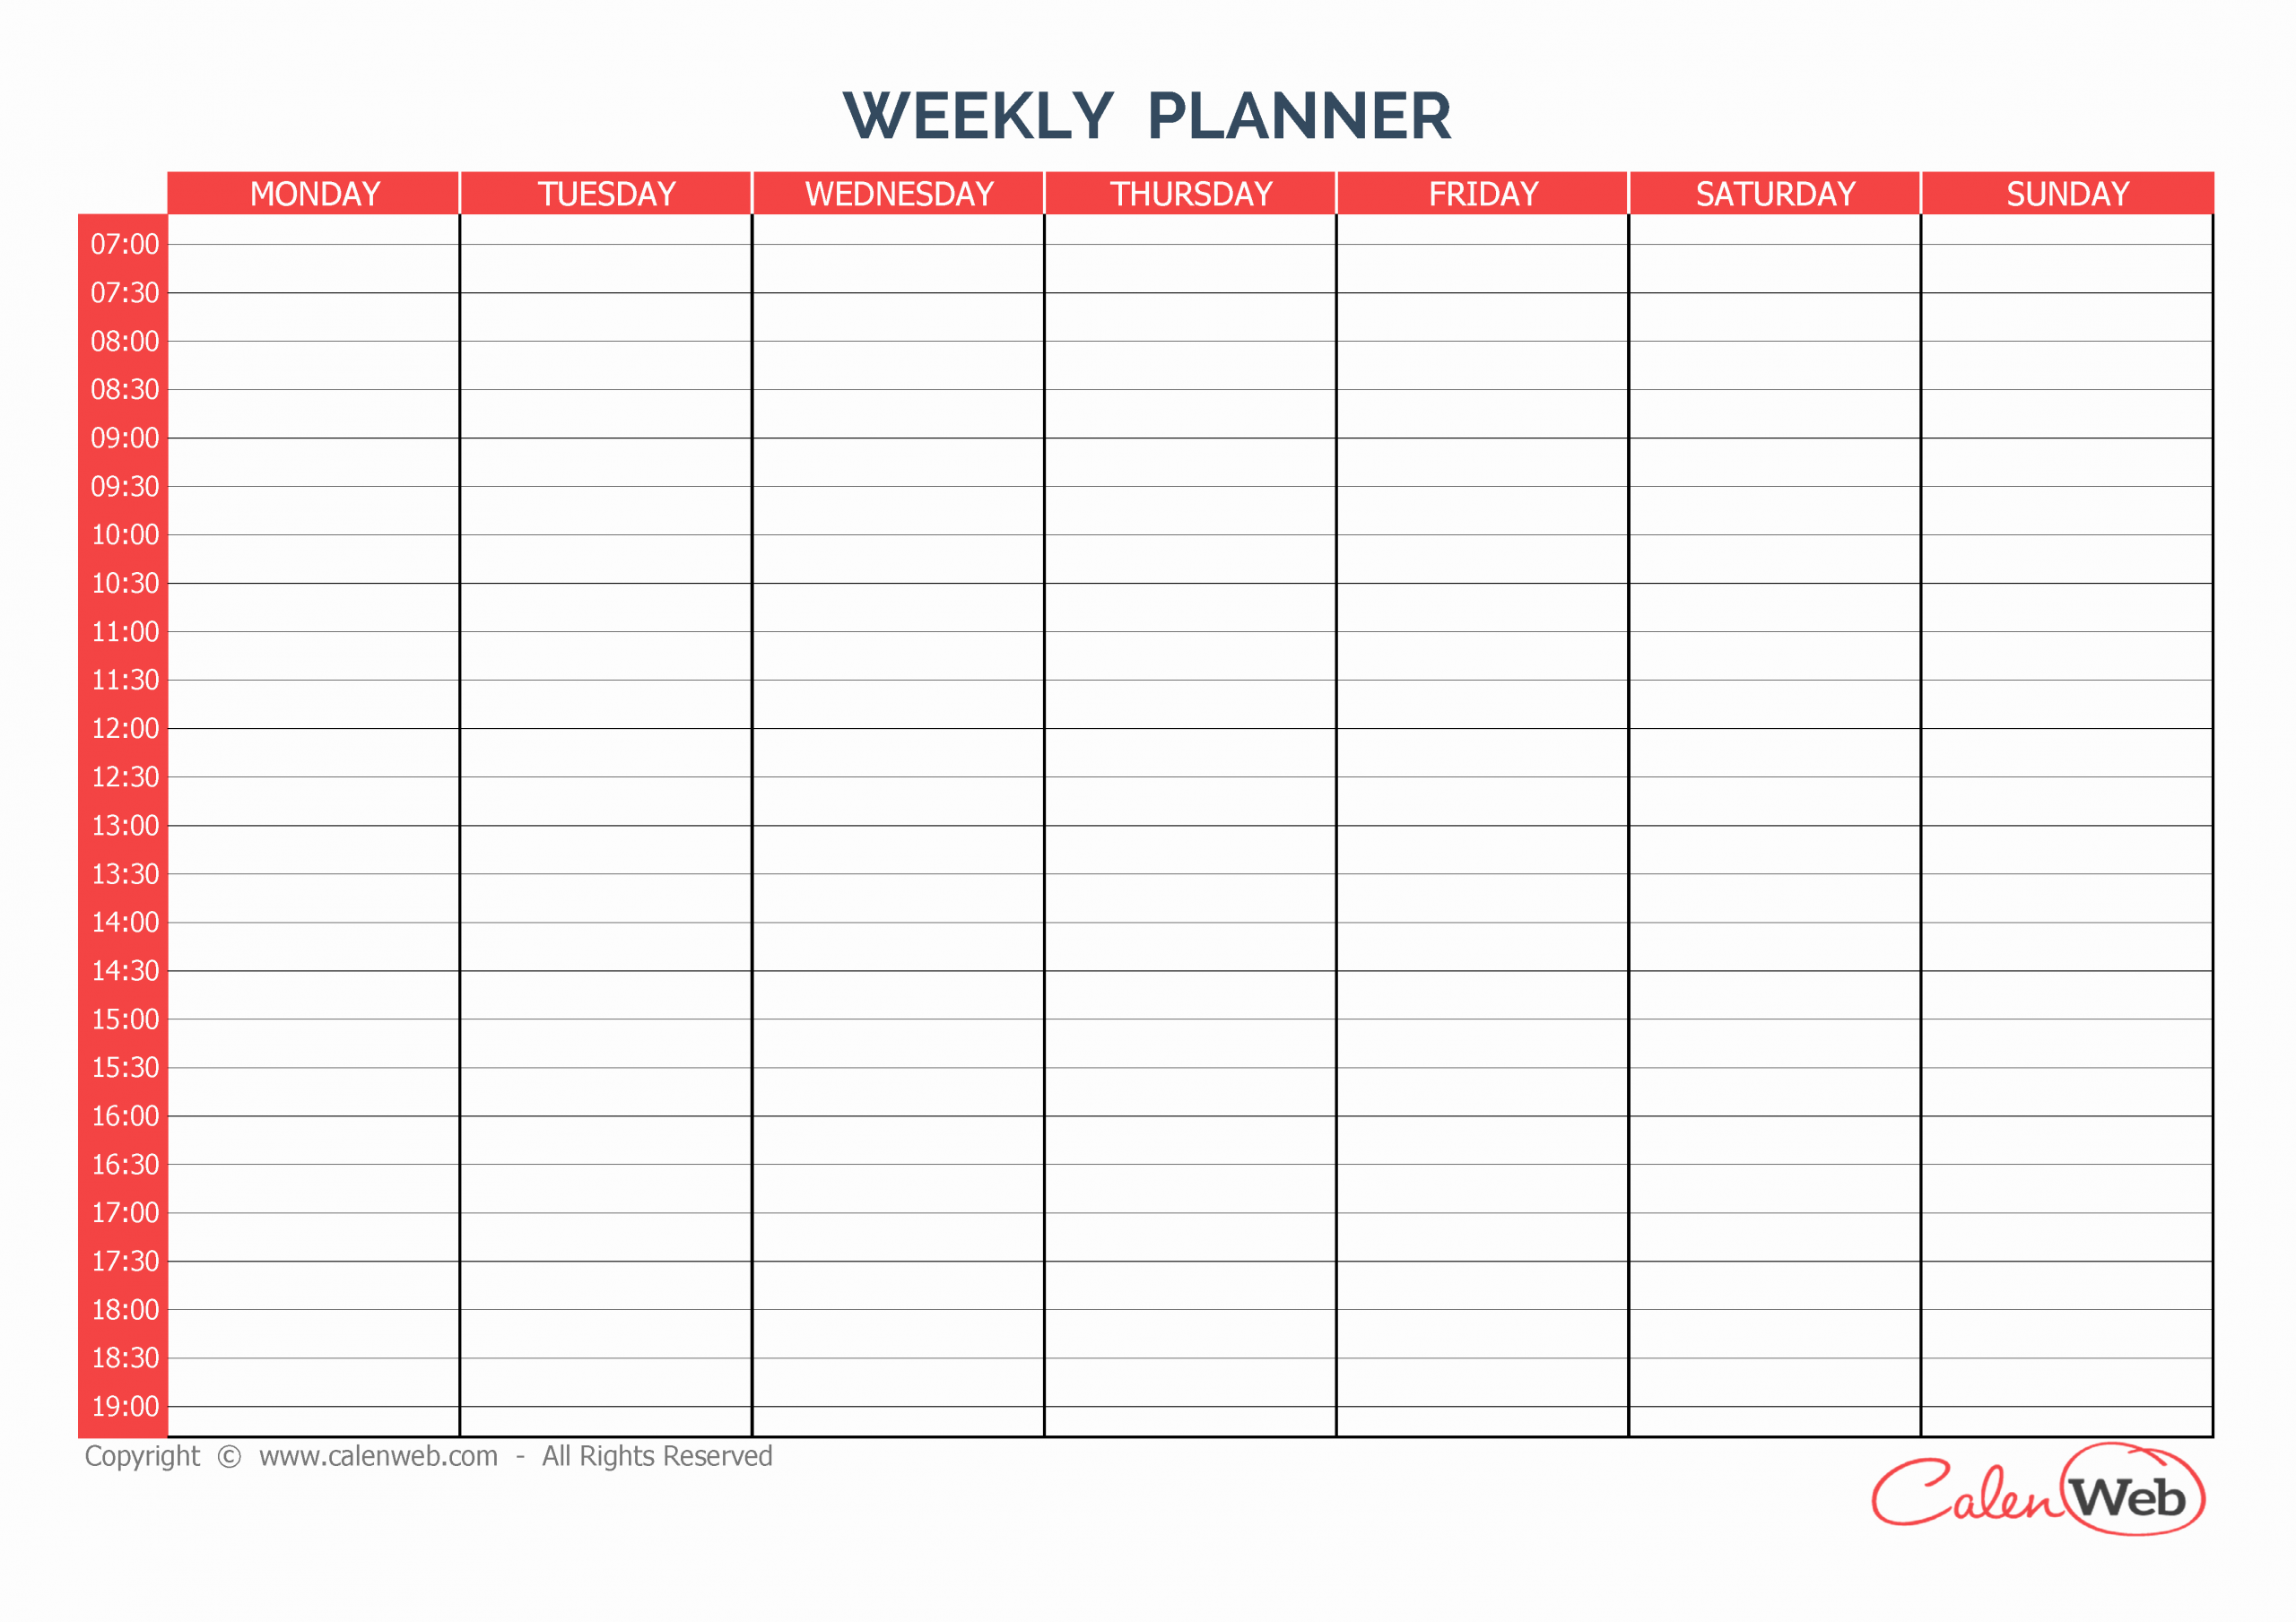 7 Day Planner Template Elegant Weekly Planner 7 Days First Day Monday A Week Of 7 Days